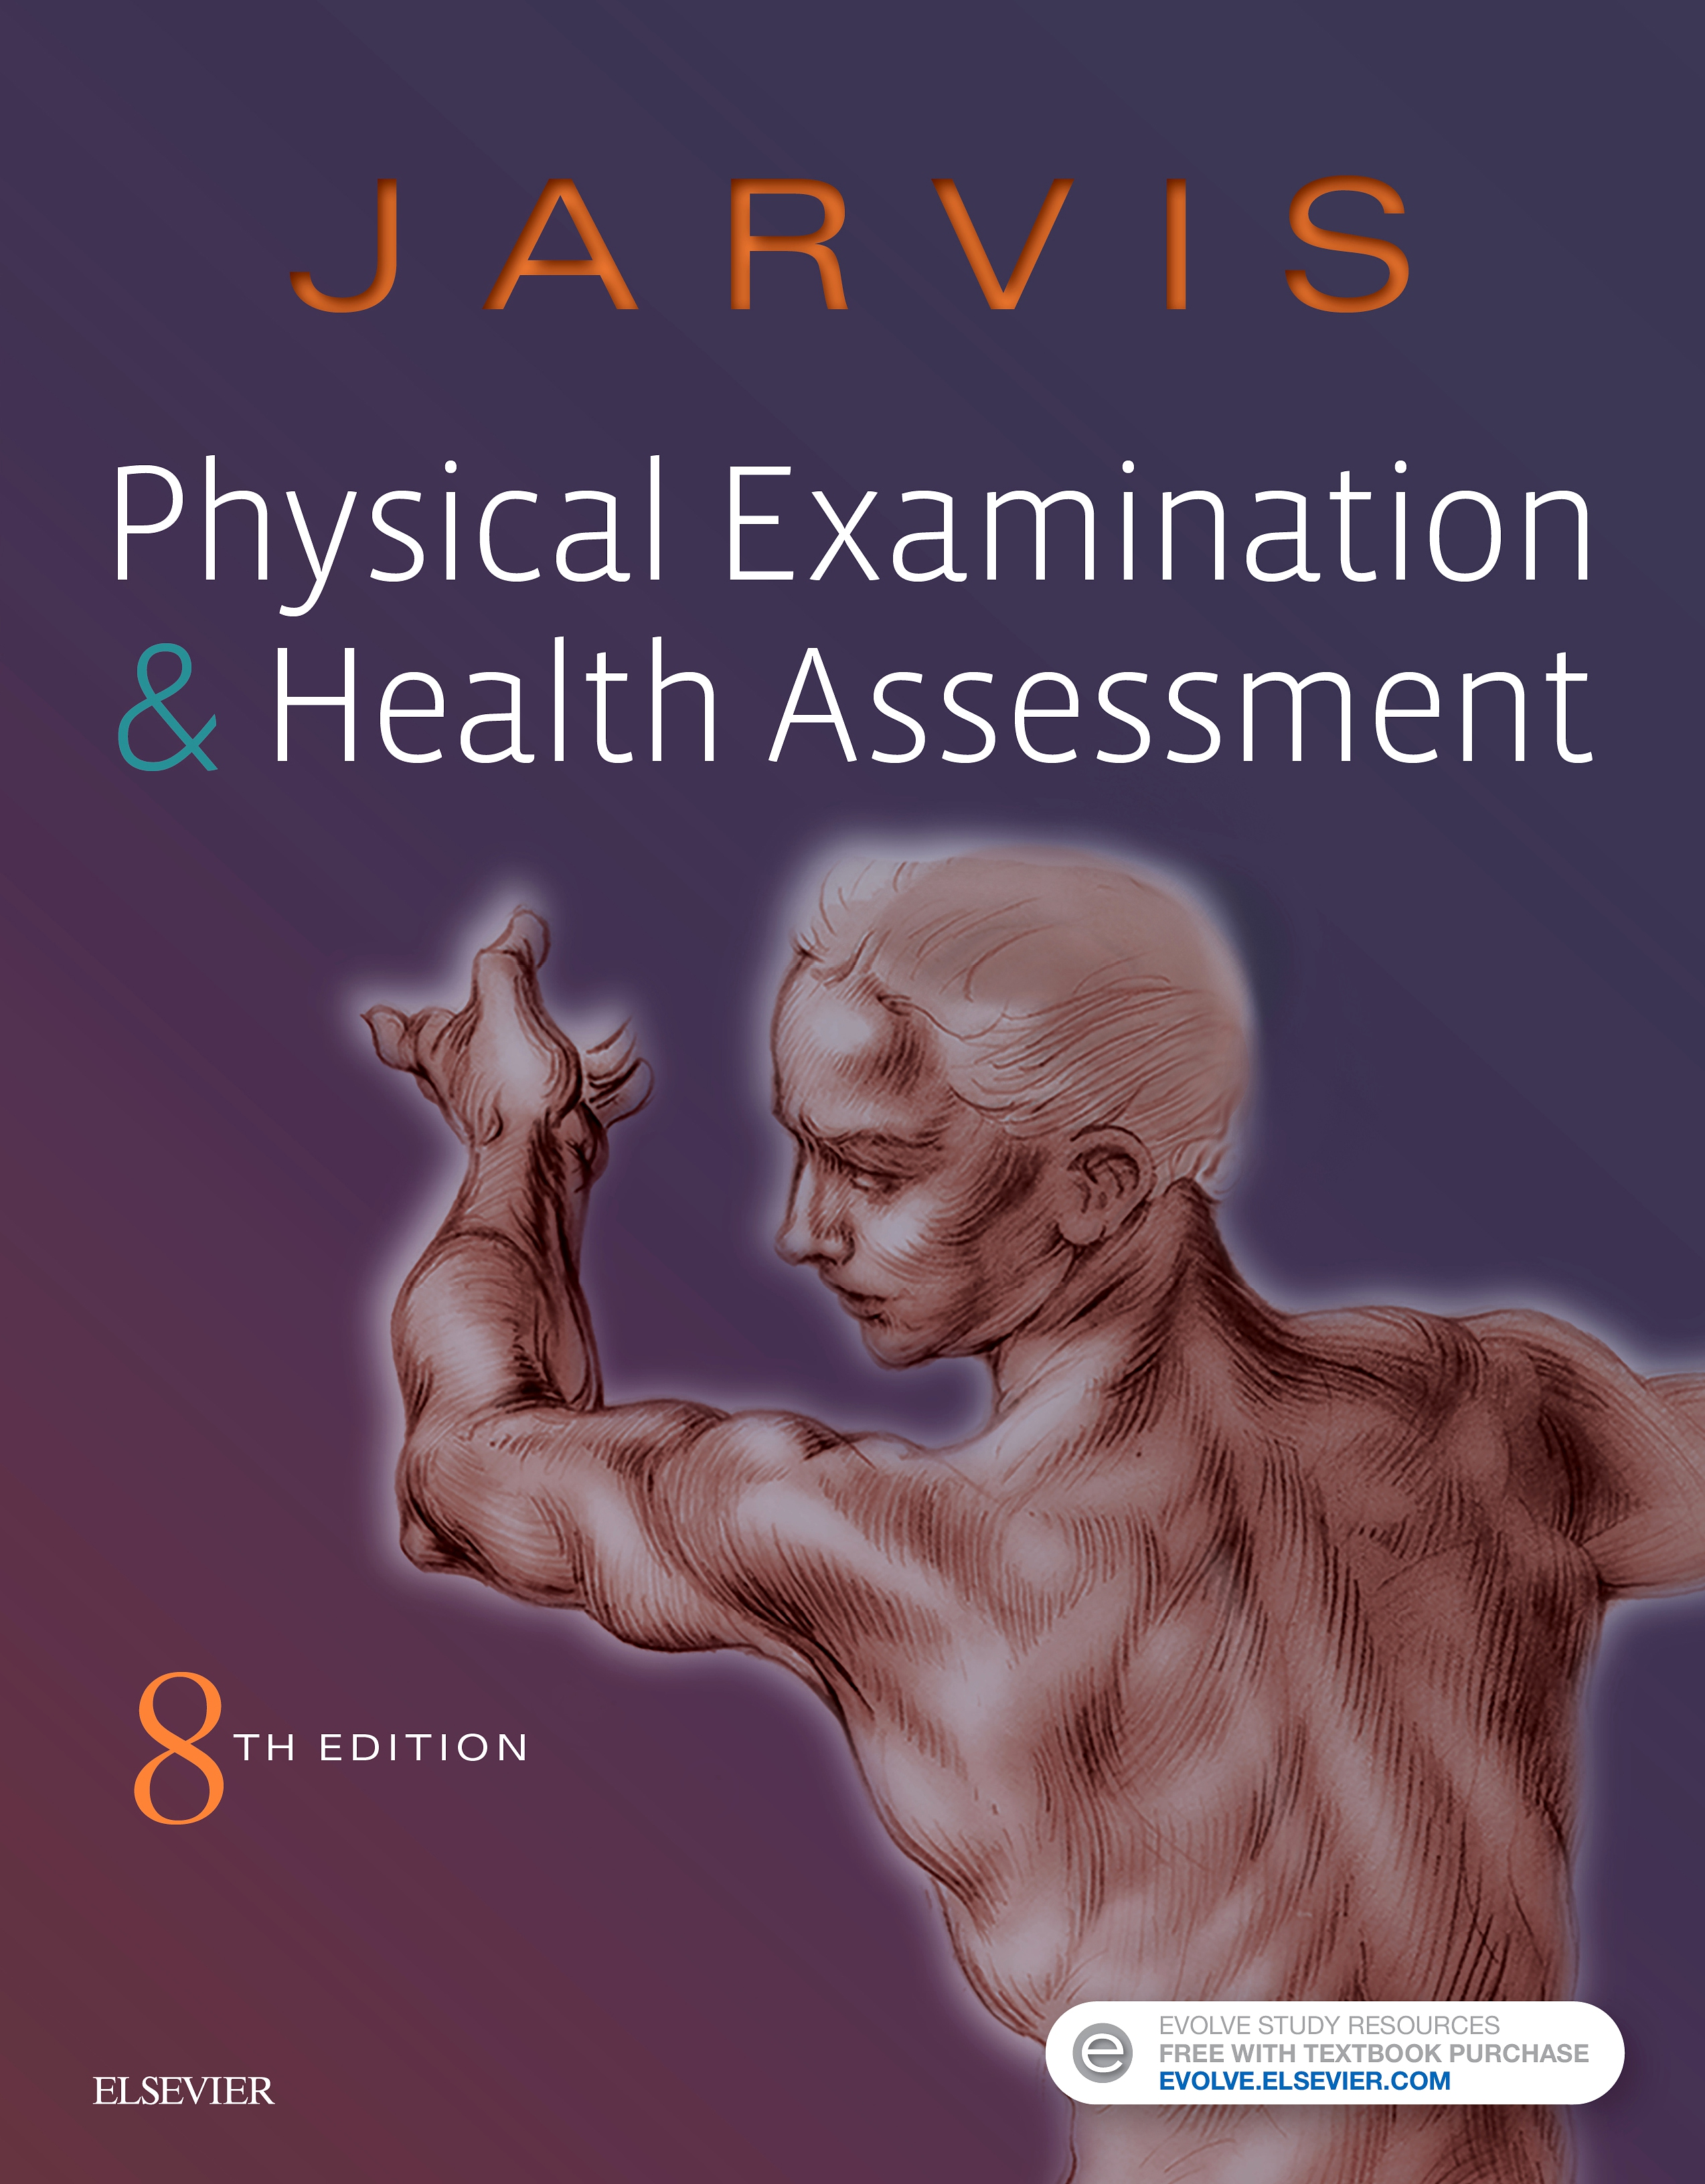 Evolve Resources for Physical Examination and Health Assessment, 8th Edition